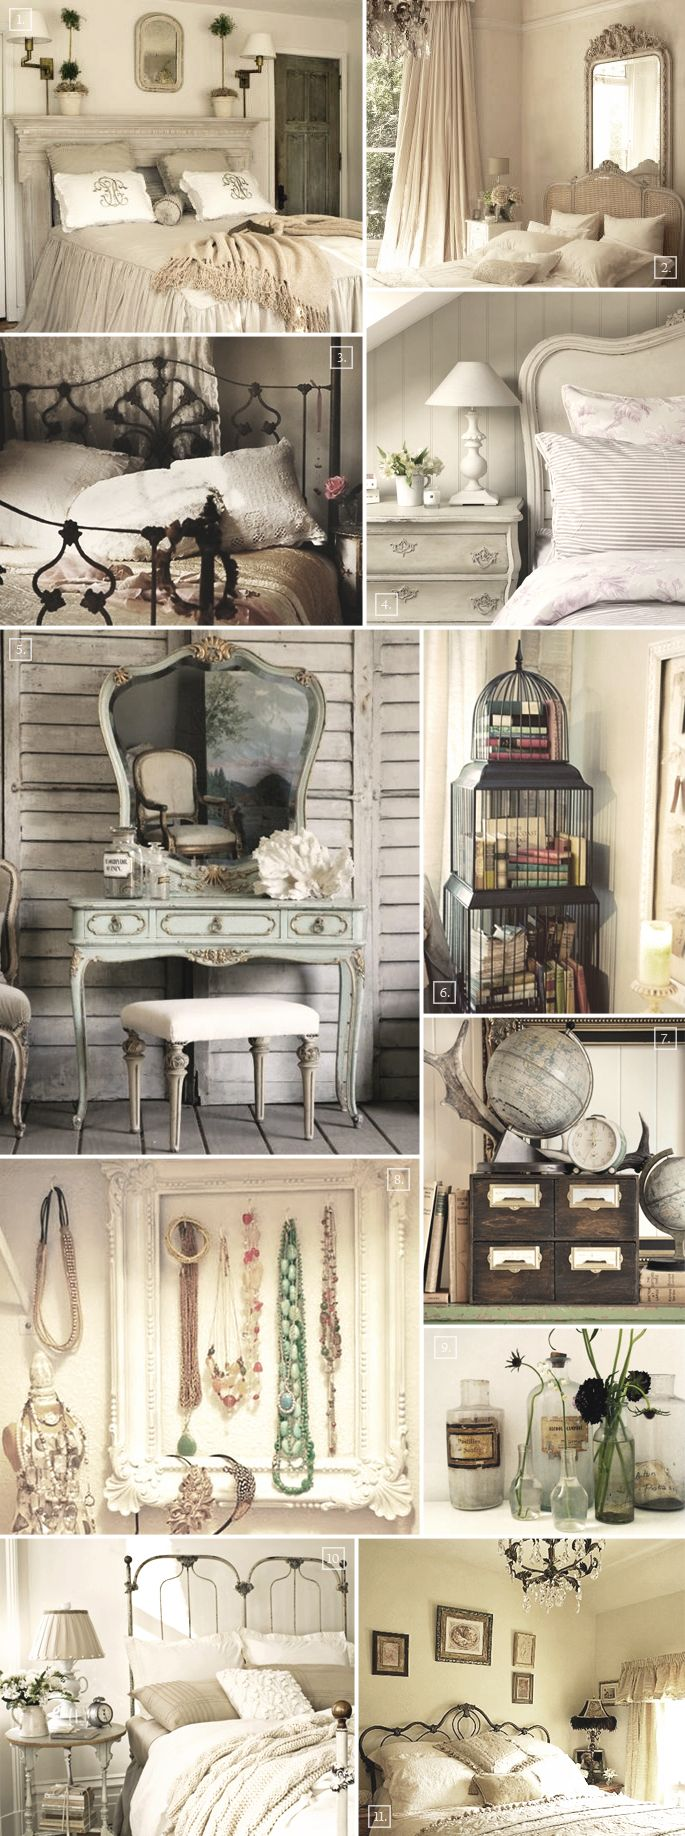 Vintage Bedroom Decor Accessories and Ideas  For the Home  Vintage bedroom decor Bedroom